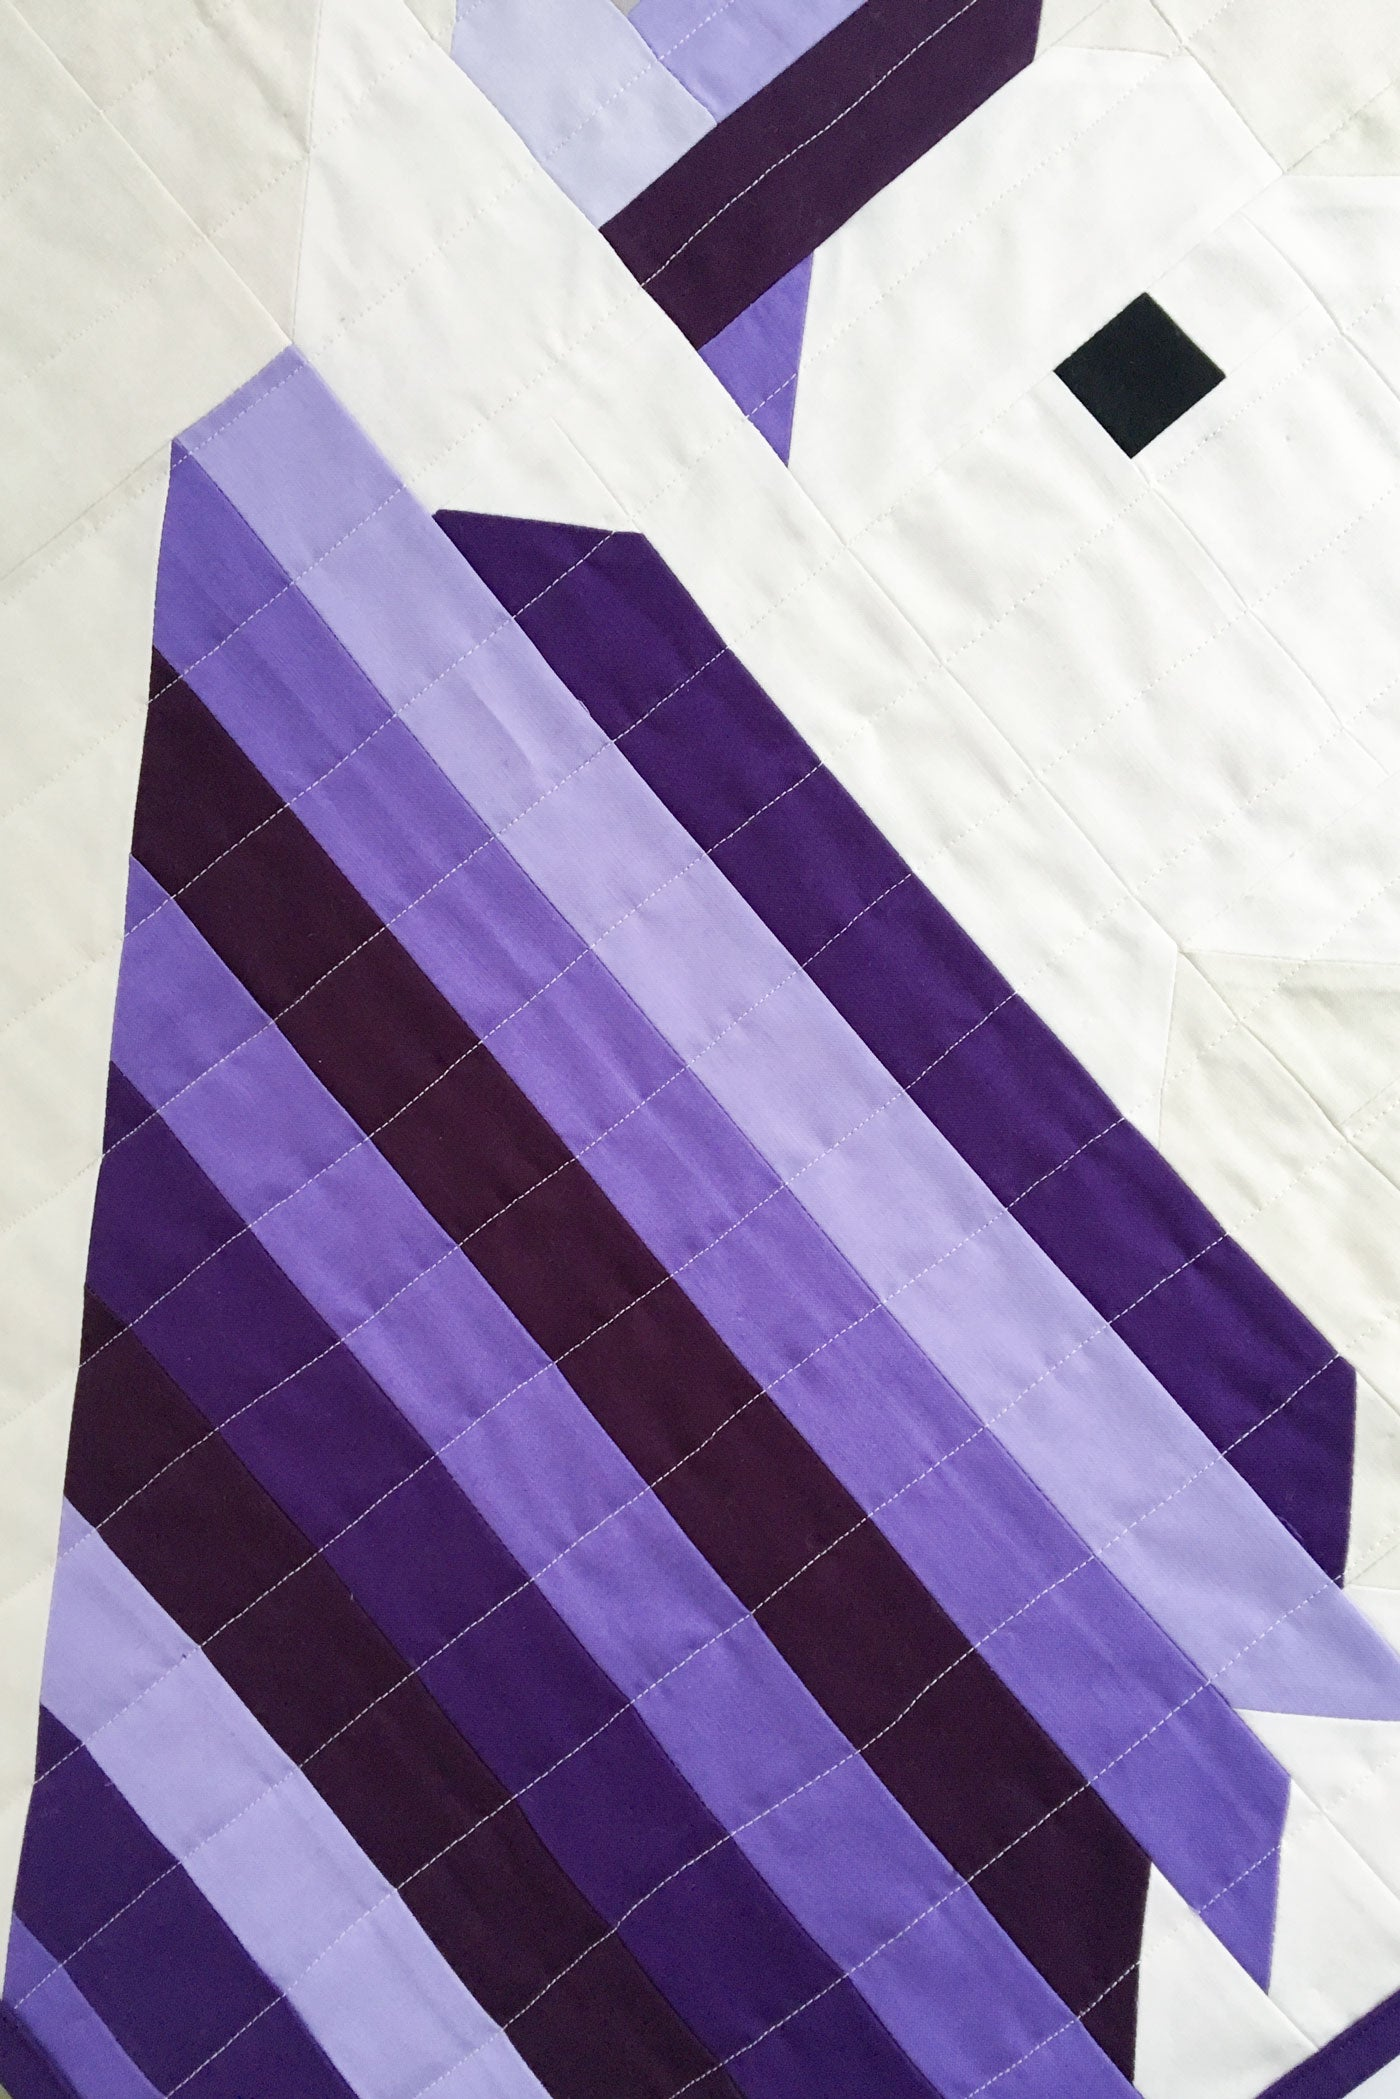 The purple main for the unicorn quilt. Made using Bella Solids cotton